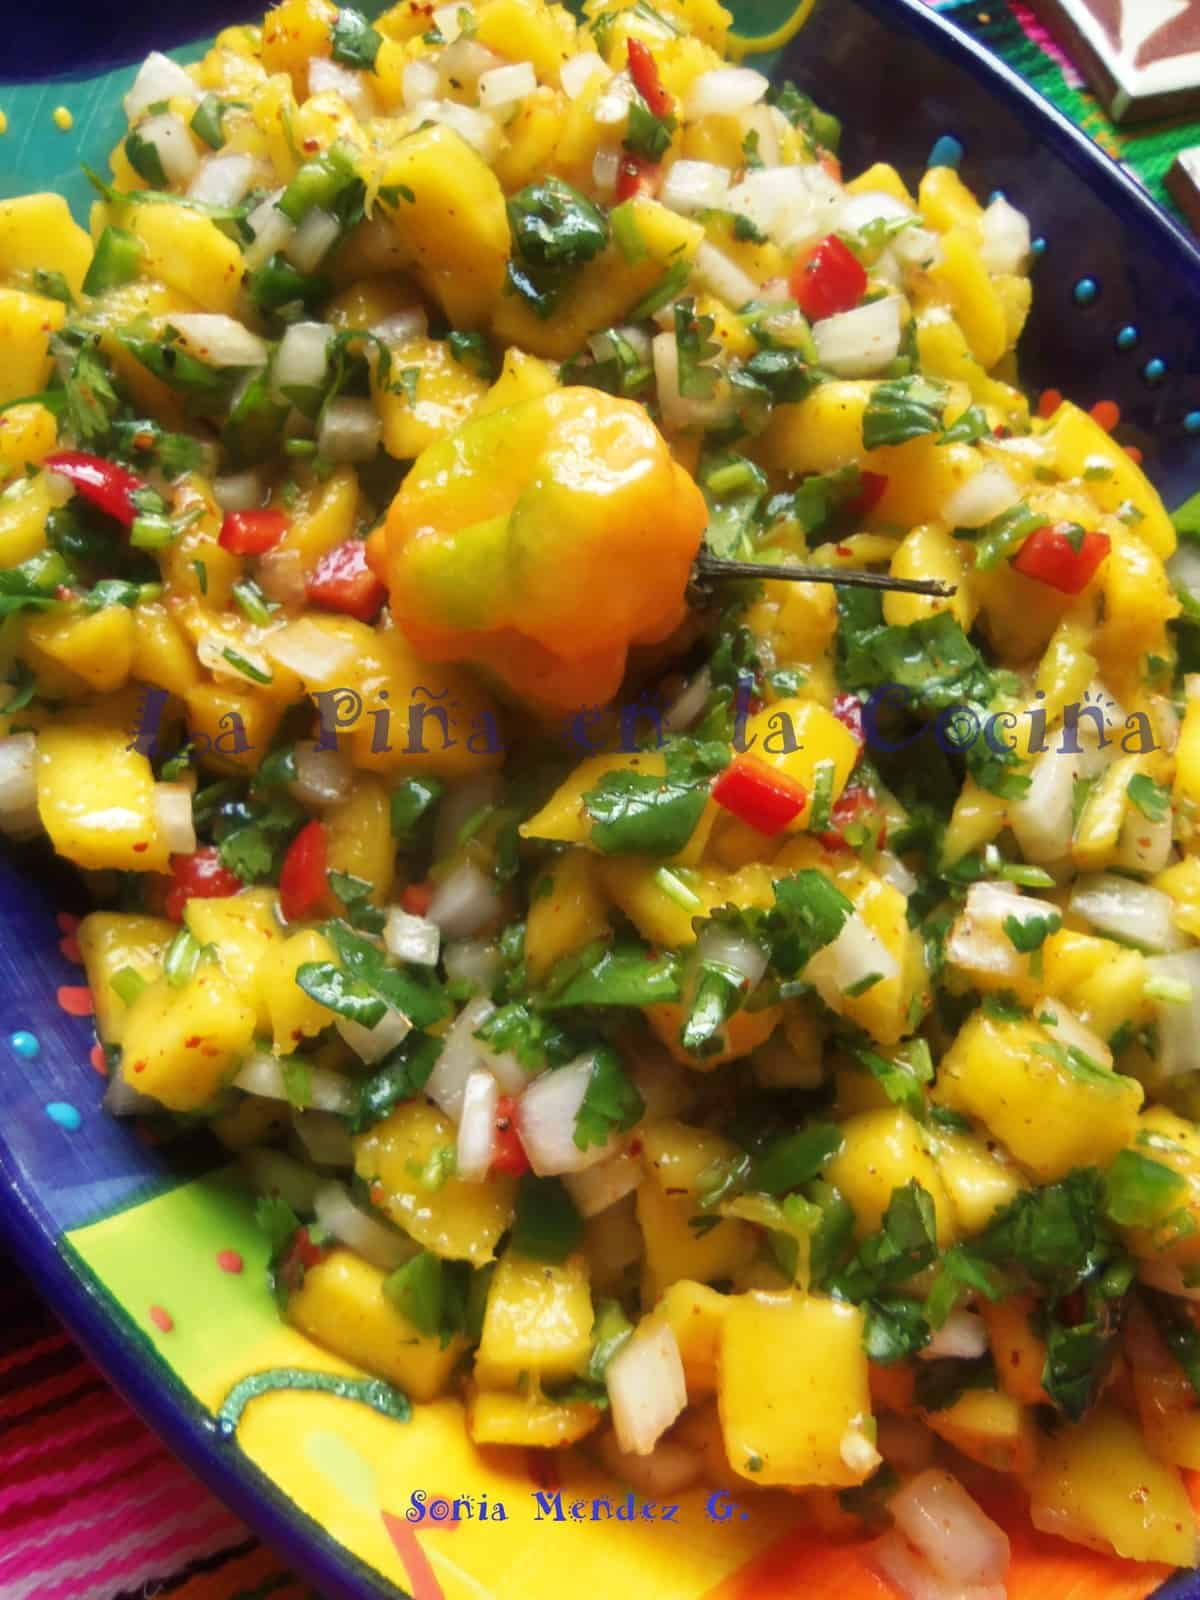 Fresh Mango Salsa with Habanero, Fresno and Serrano Chiles